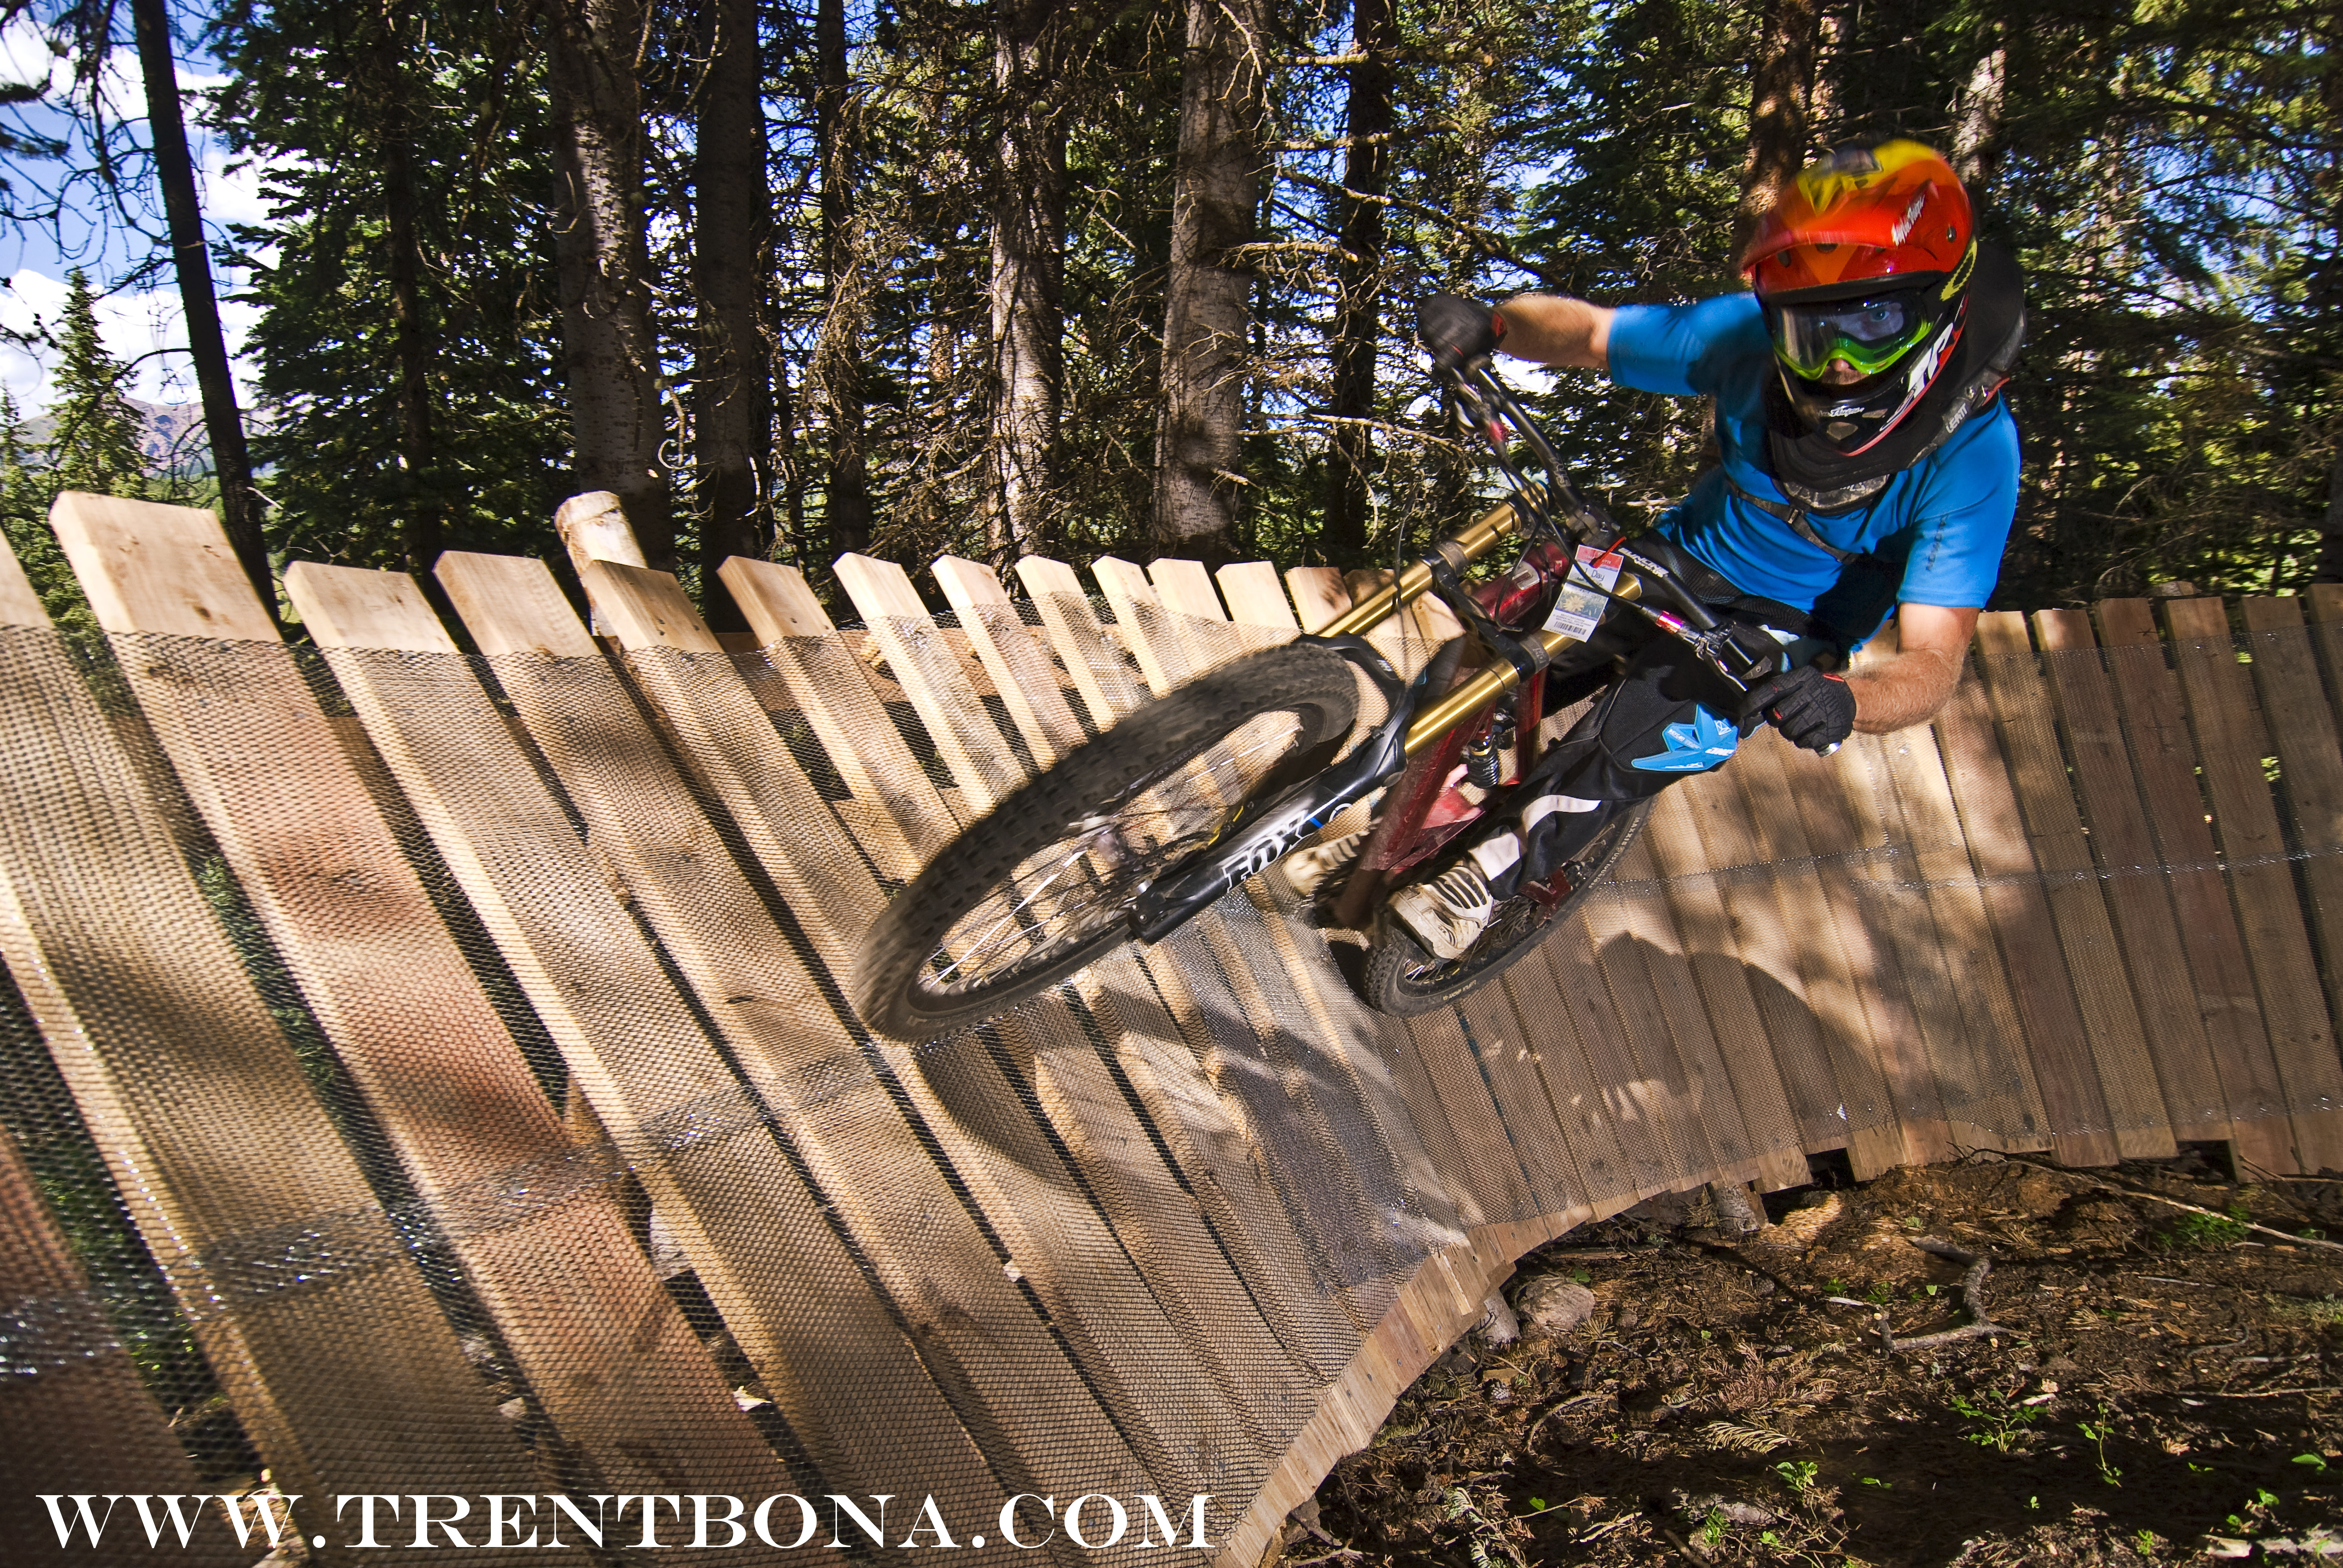 Mueller Wall Ride Fb Trentbona Com Mountain Biking